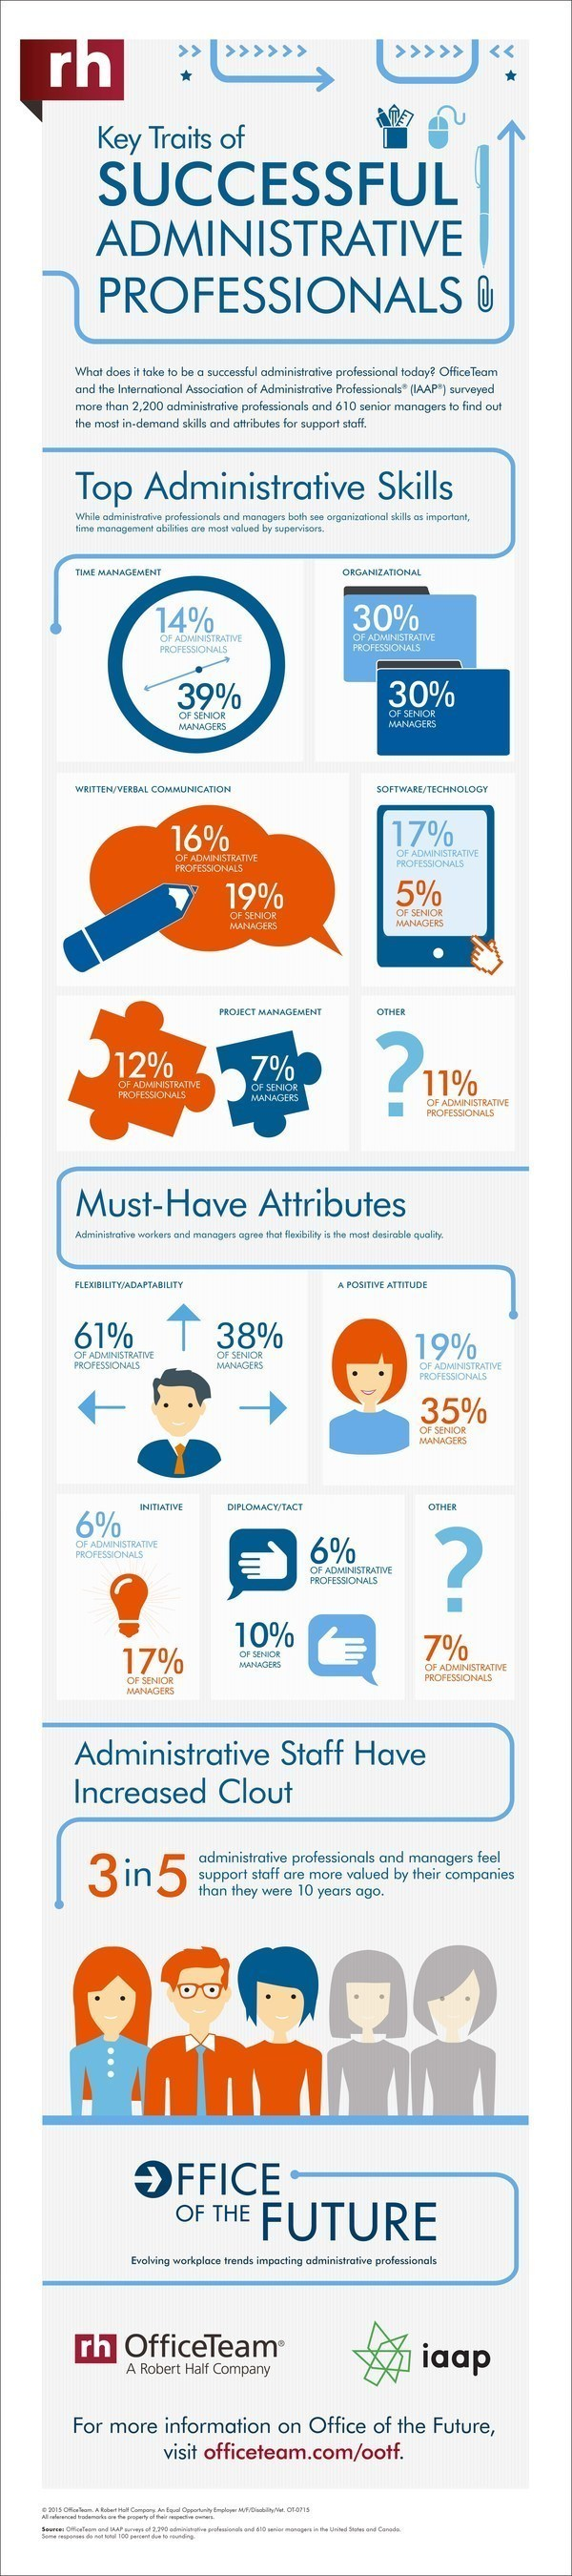 3 in 5 (60%) senior managers surveyed by OfficeTeam and the International Association of Administrative ...